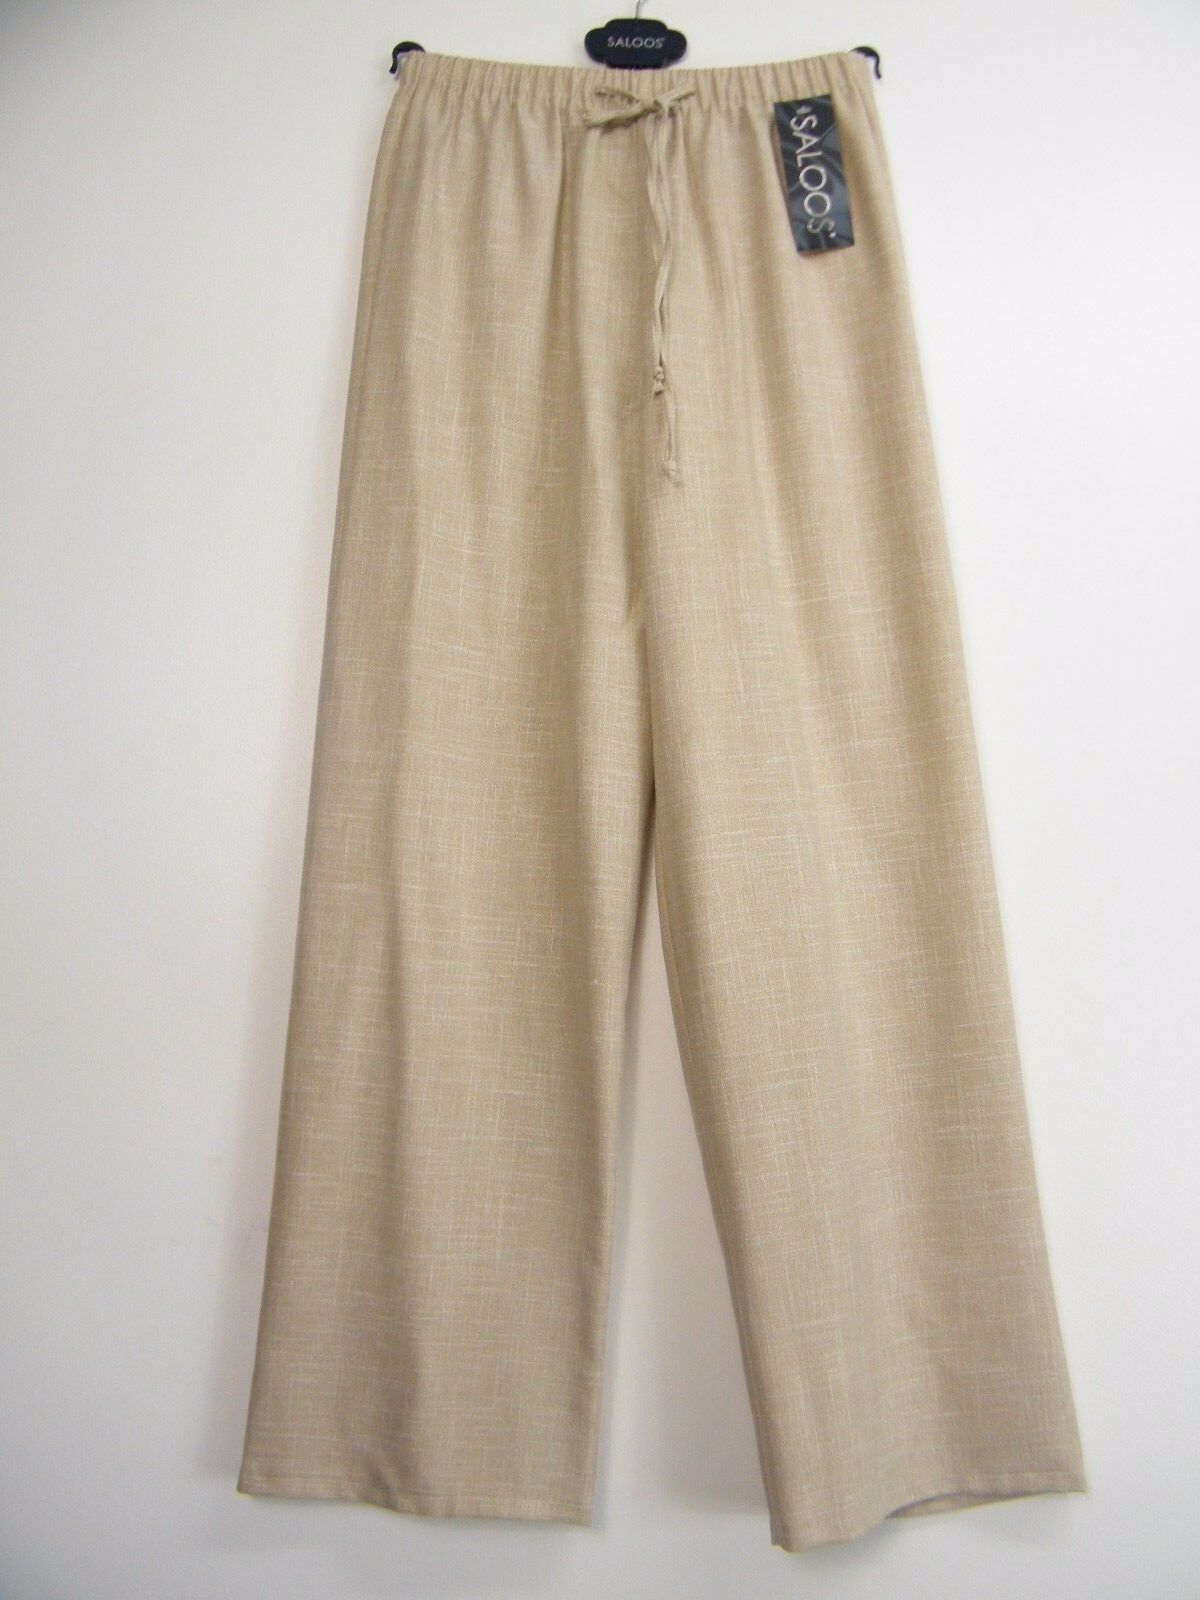 SALOOS ANIMAL PRINT BLACK/& BEIGE SPARKLY STRETCHY PALAZZO TROUSERS SIZEUK 12 14